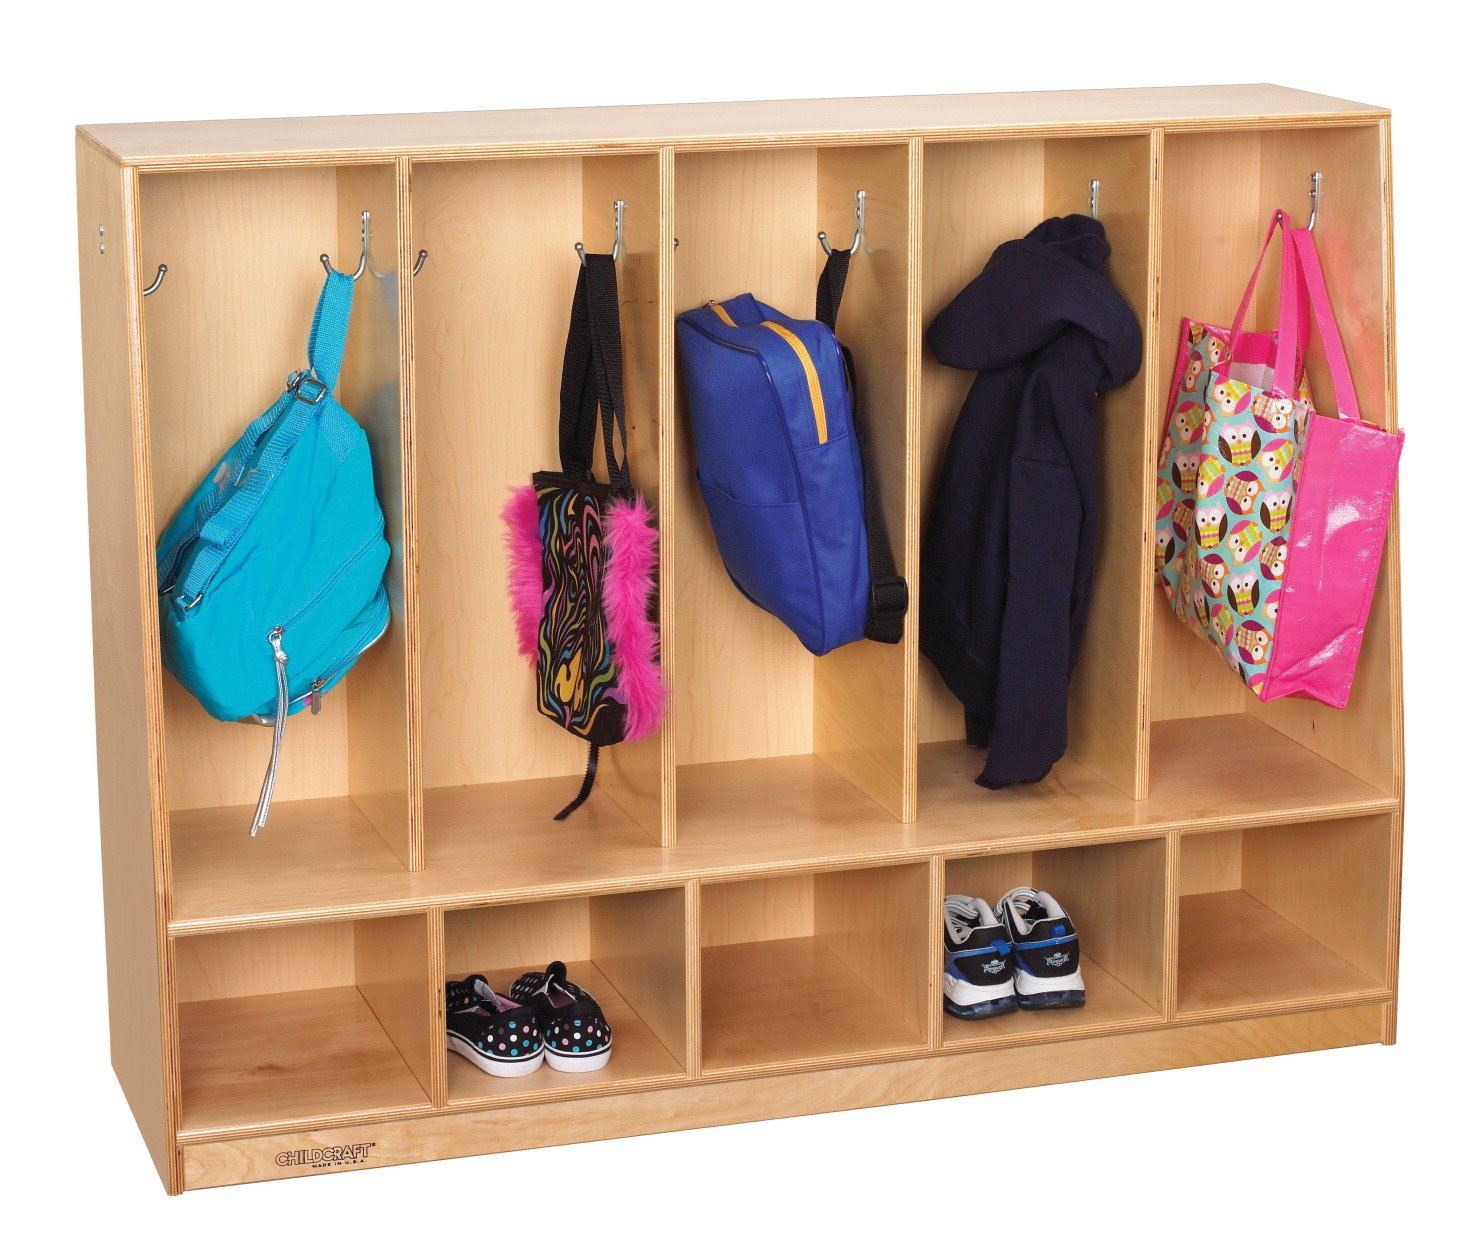 Childcraft Toddler Bench Coat Locker, 5 Sections, 53-3/4 x 13-3/4 x 36 Inches by Childcraft